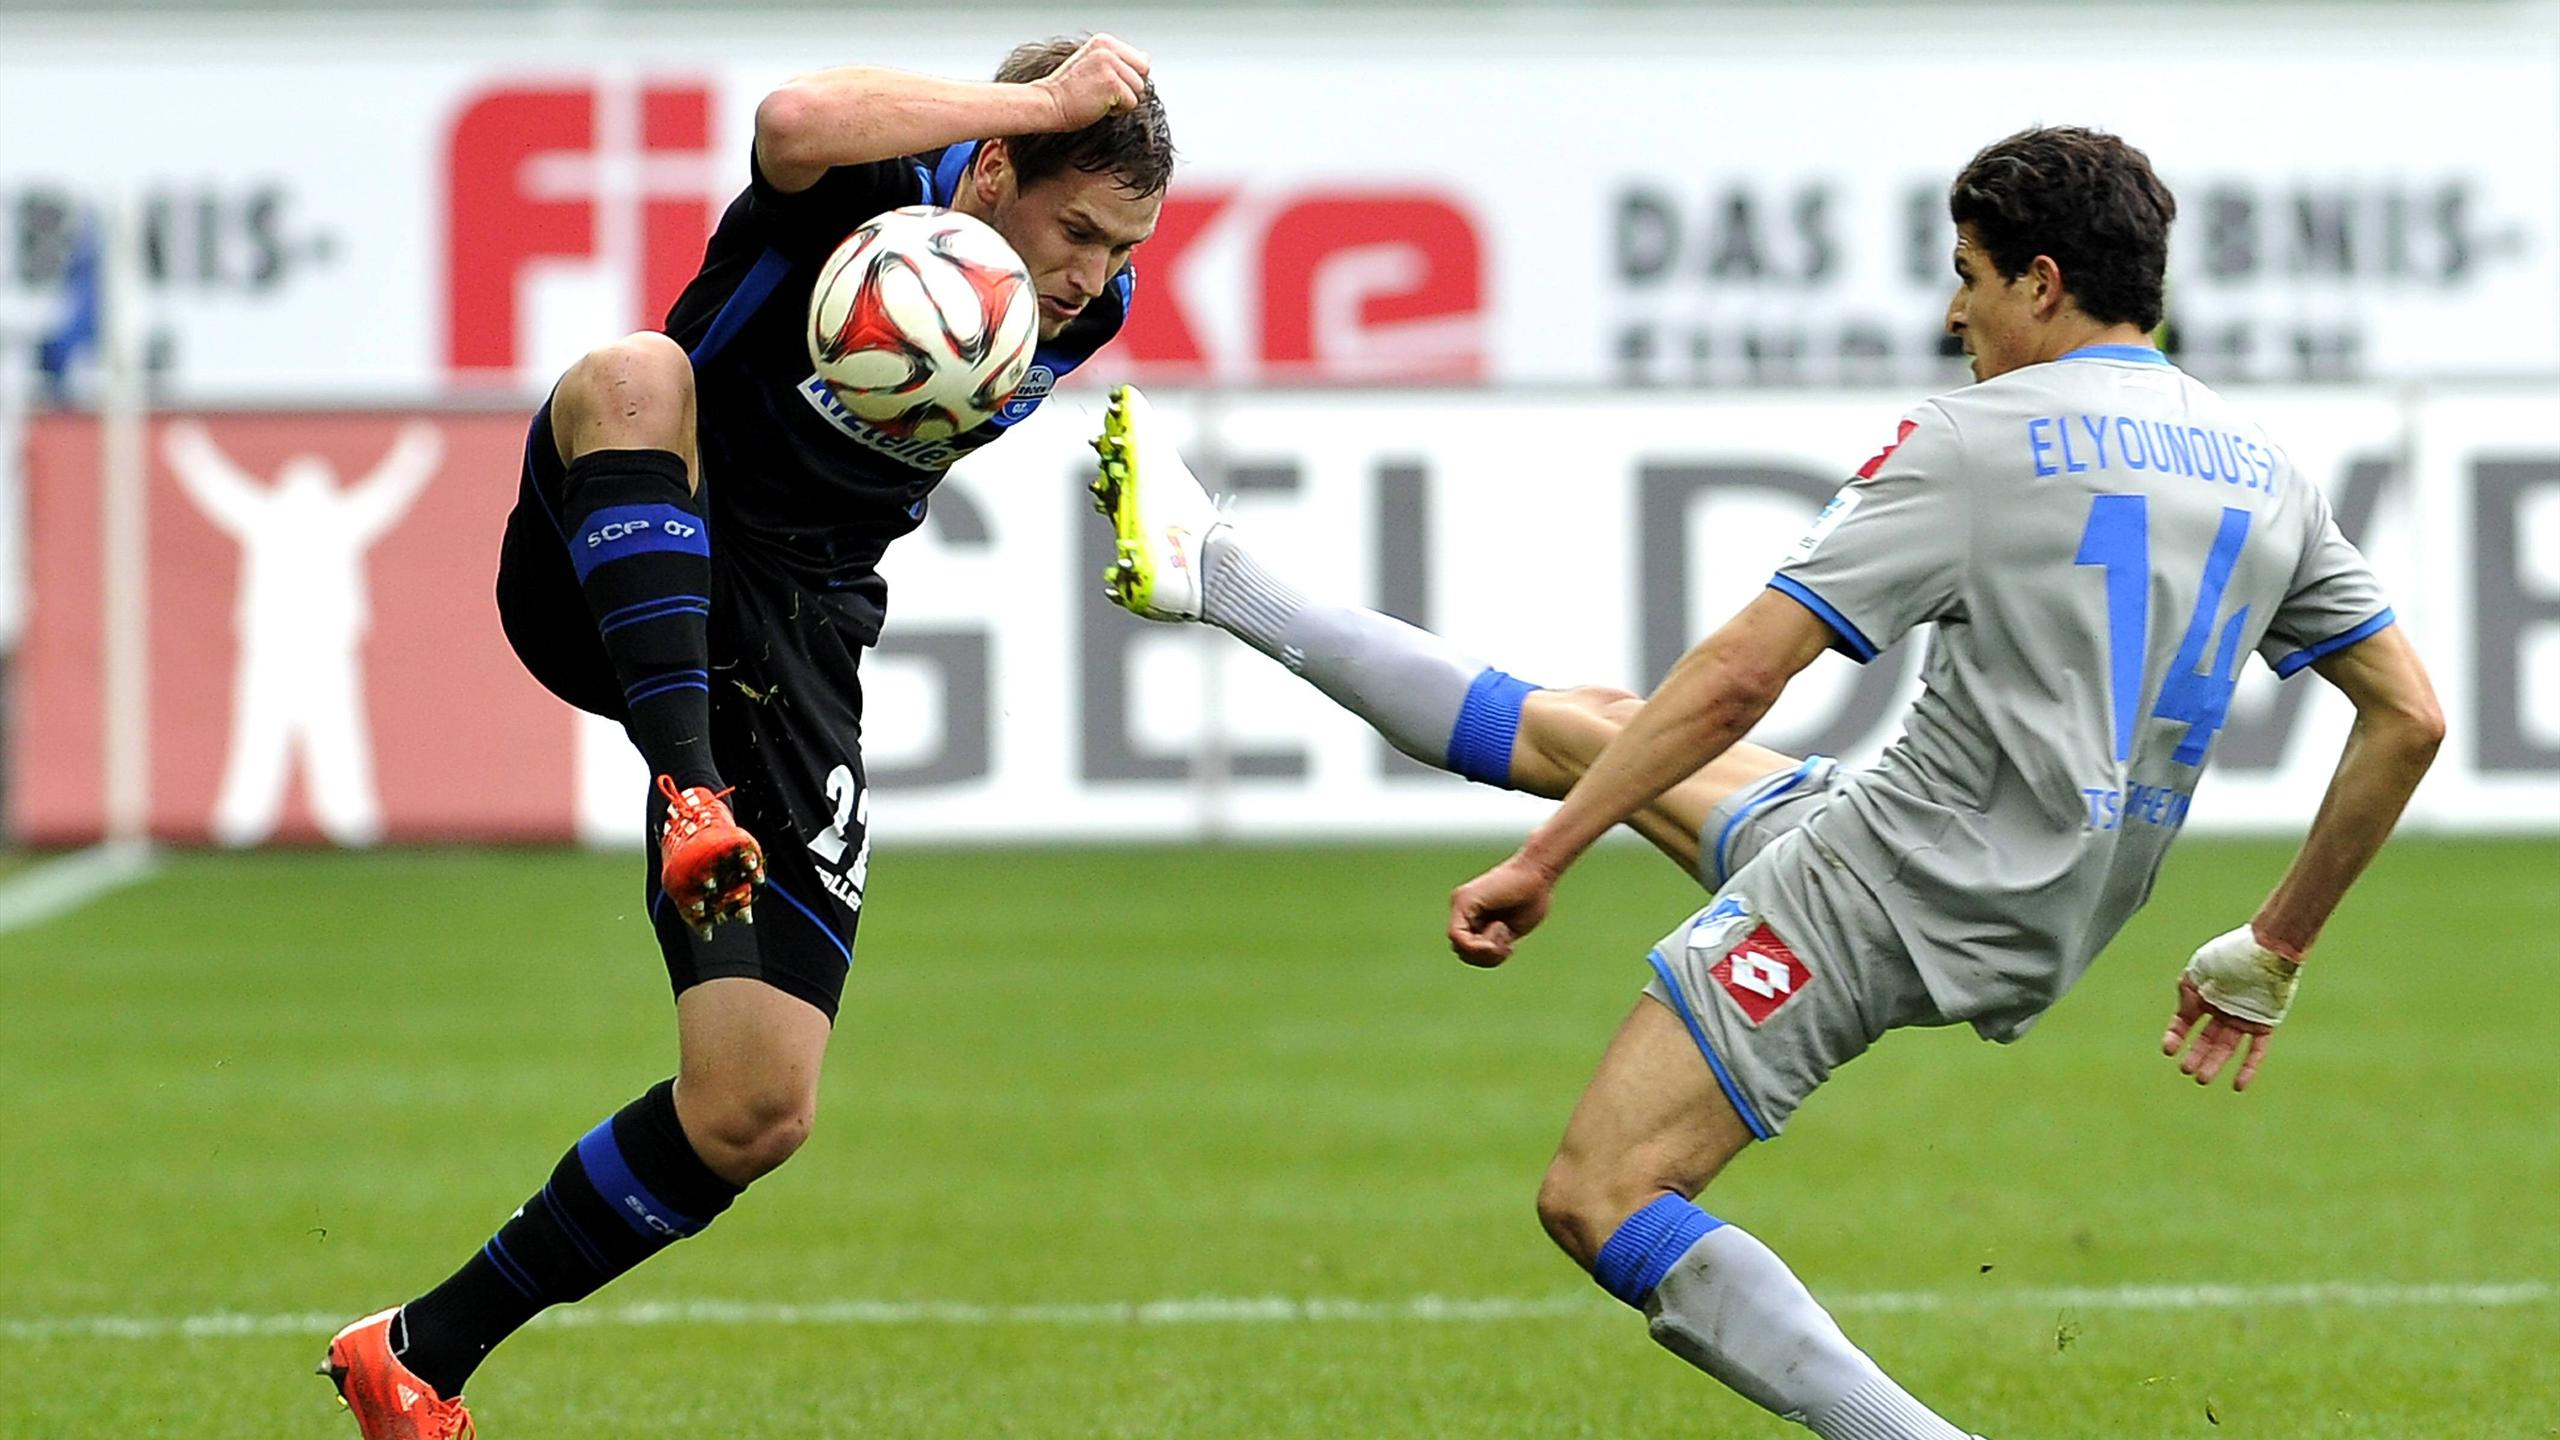 Video: Paderborn vs Hoffenheim